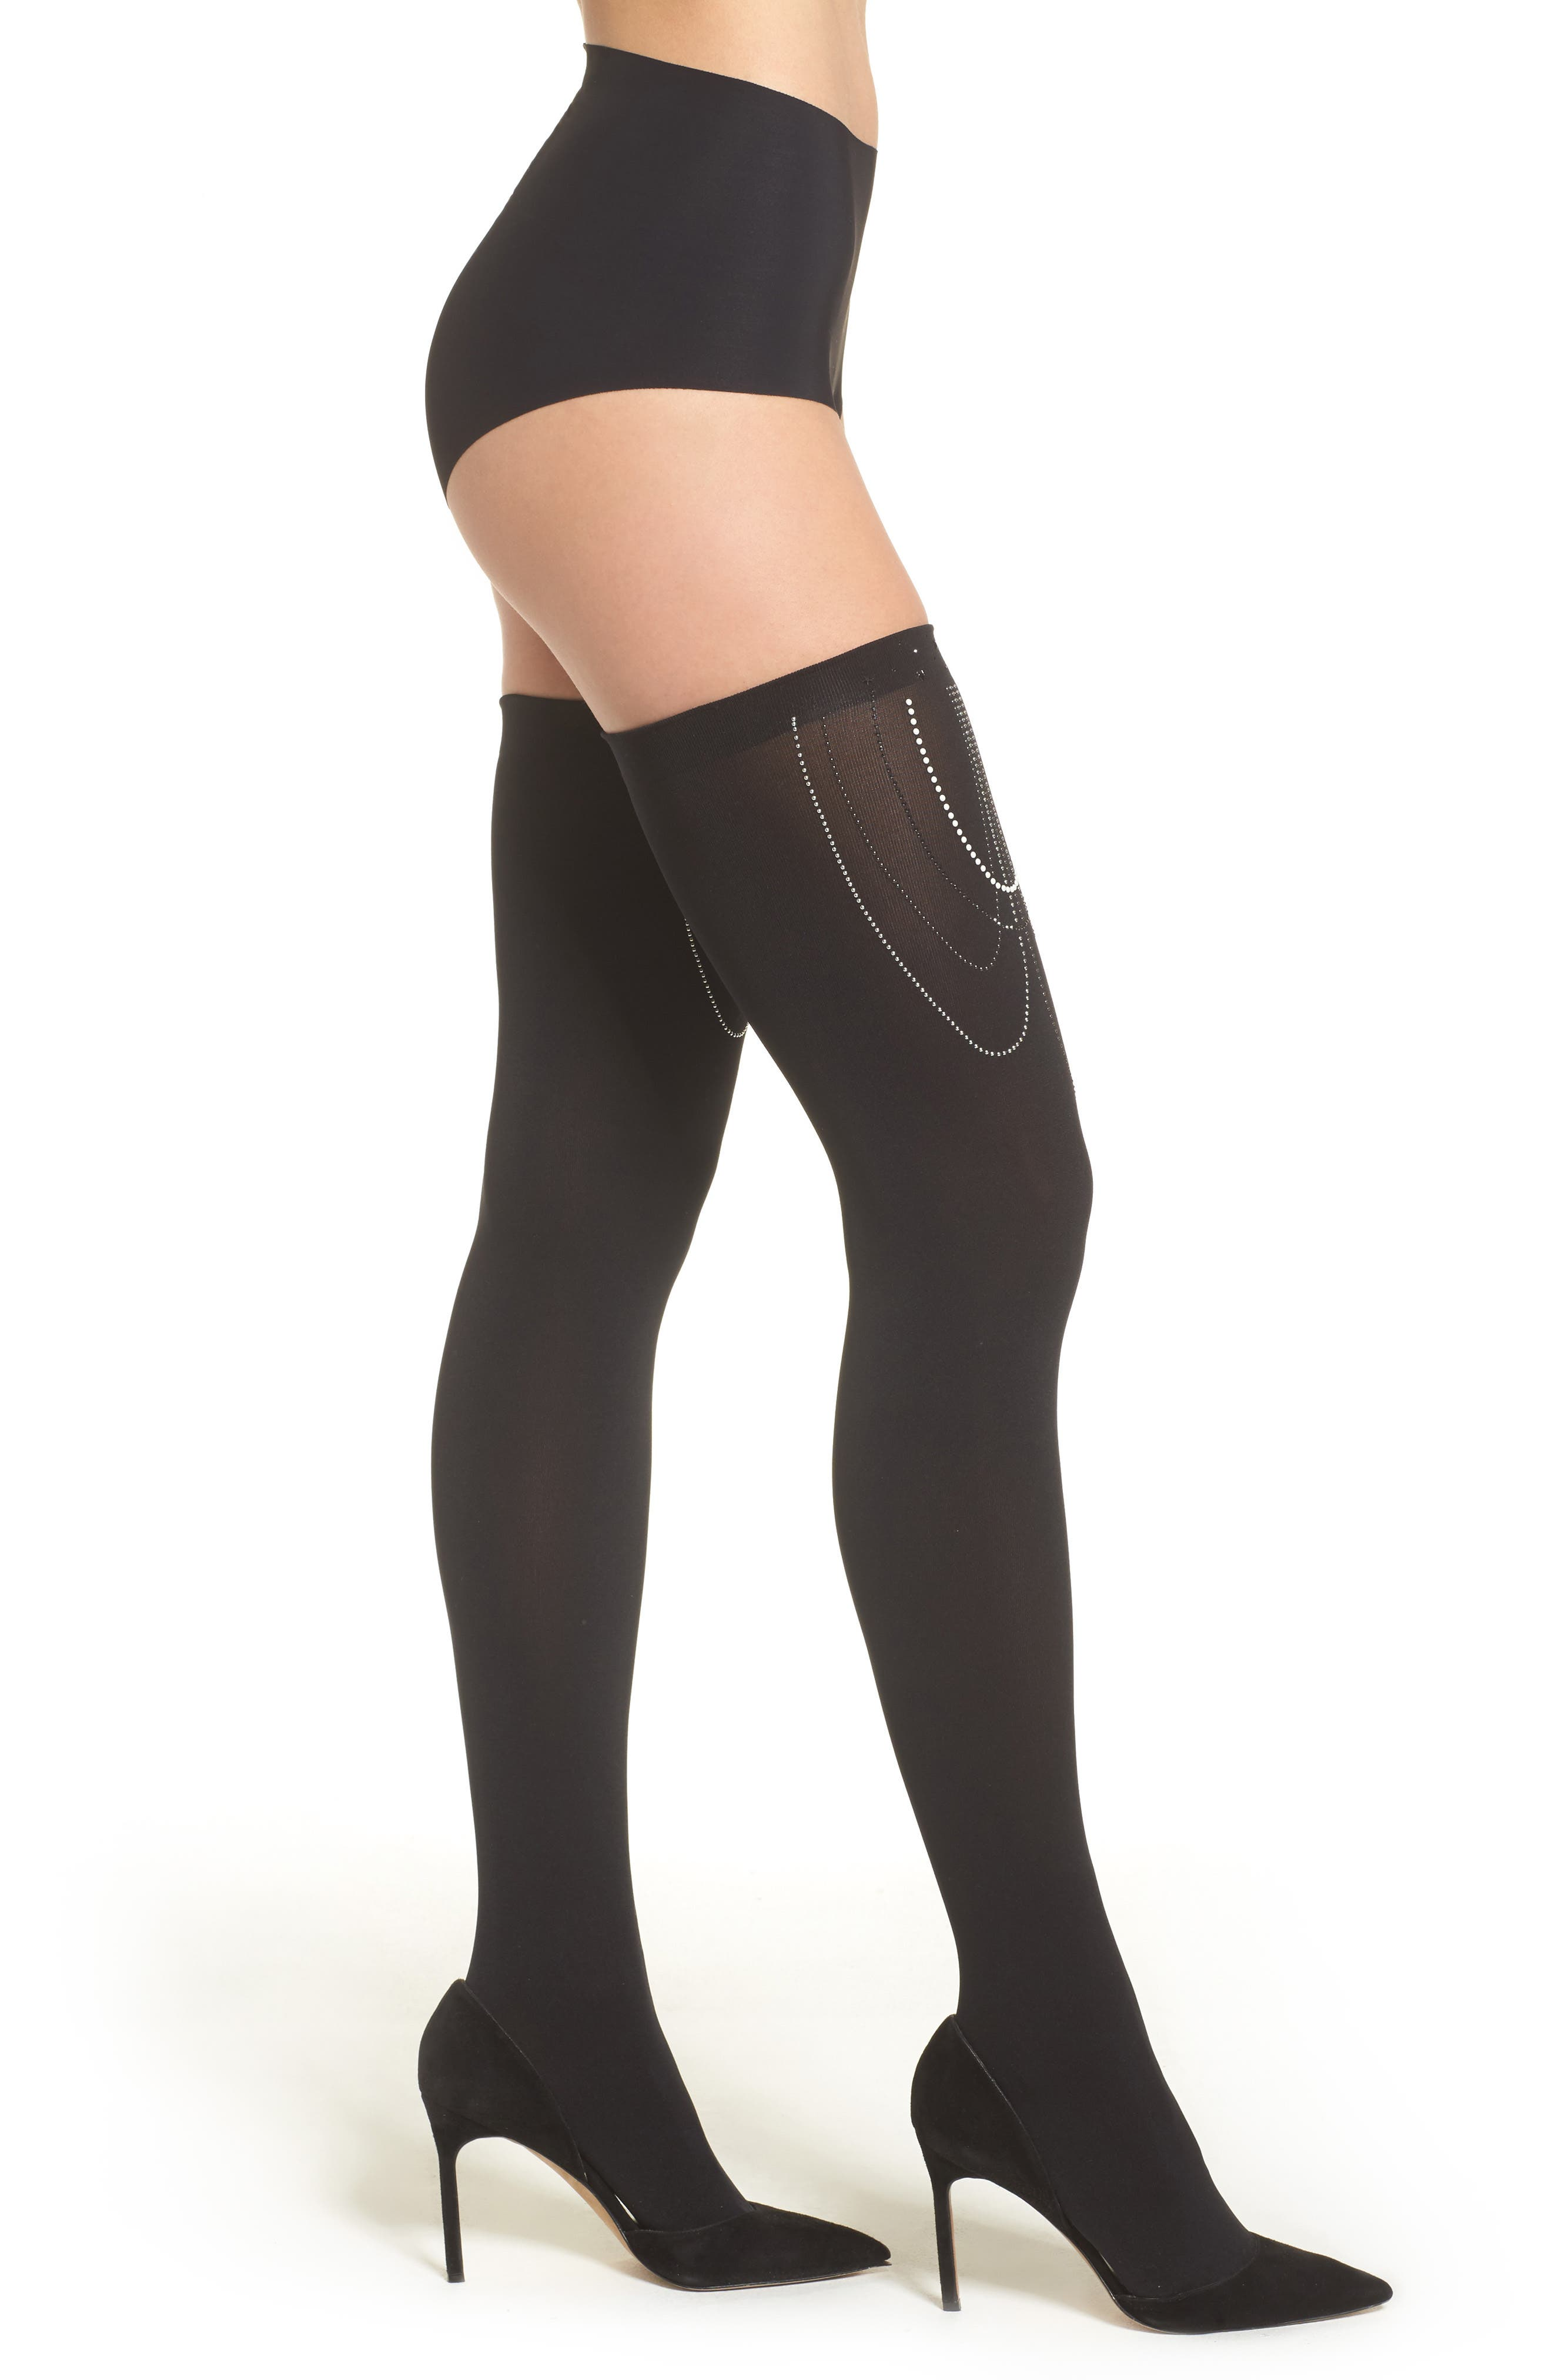 Embellished Stay-Put Stockings,                             Main thumbnail 1, color,                             001